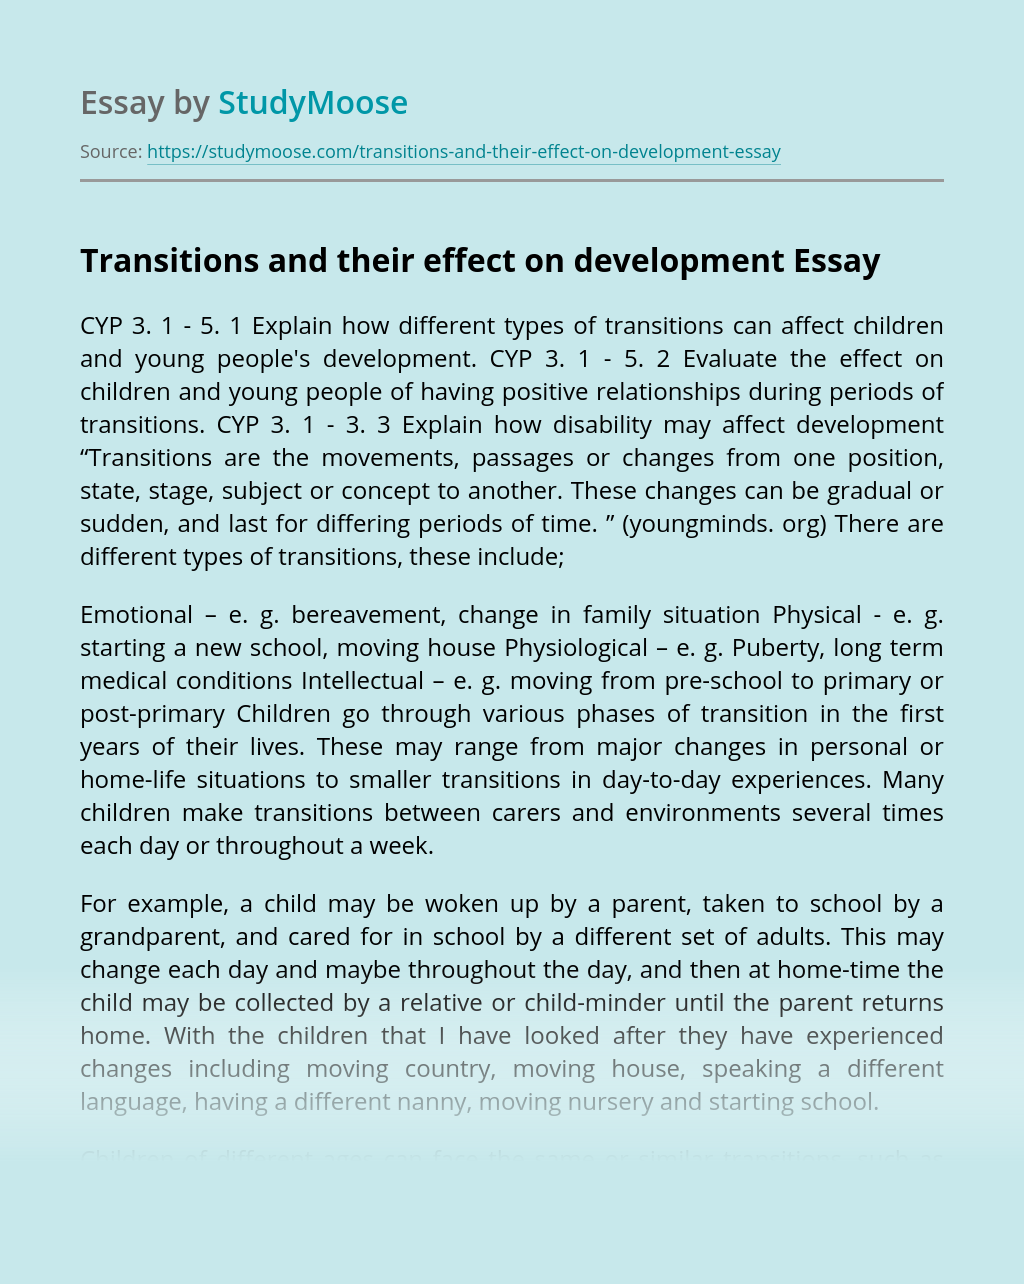 Transitions and their effect on development